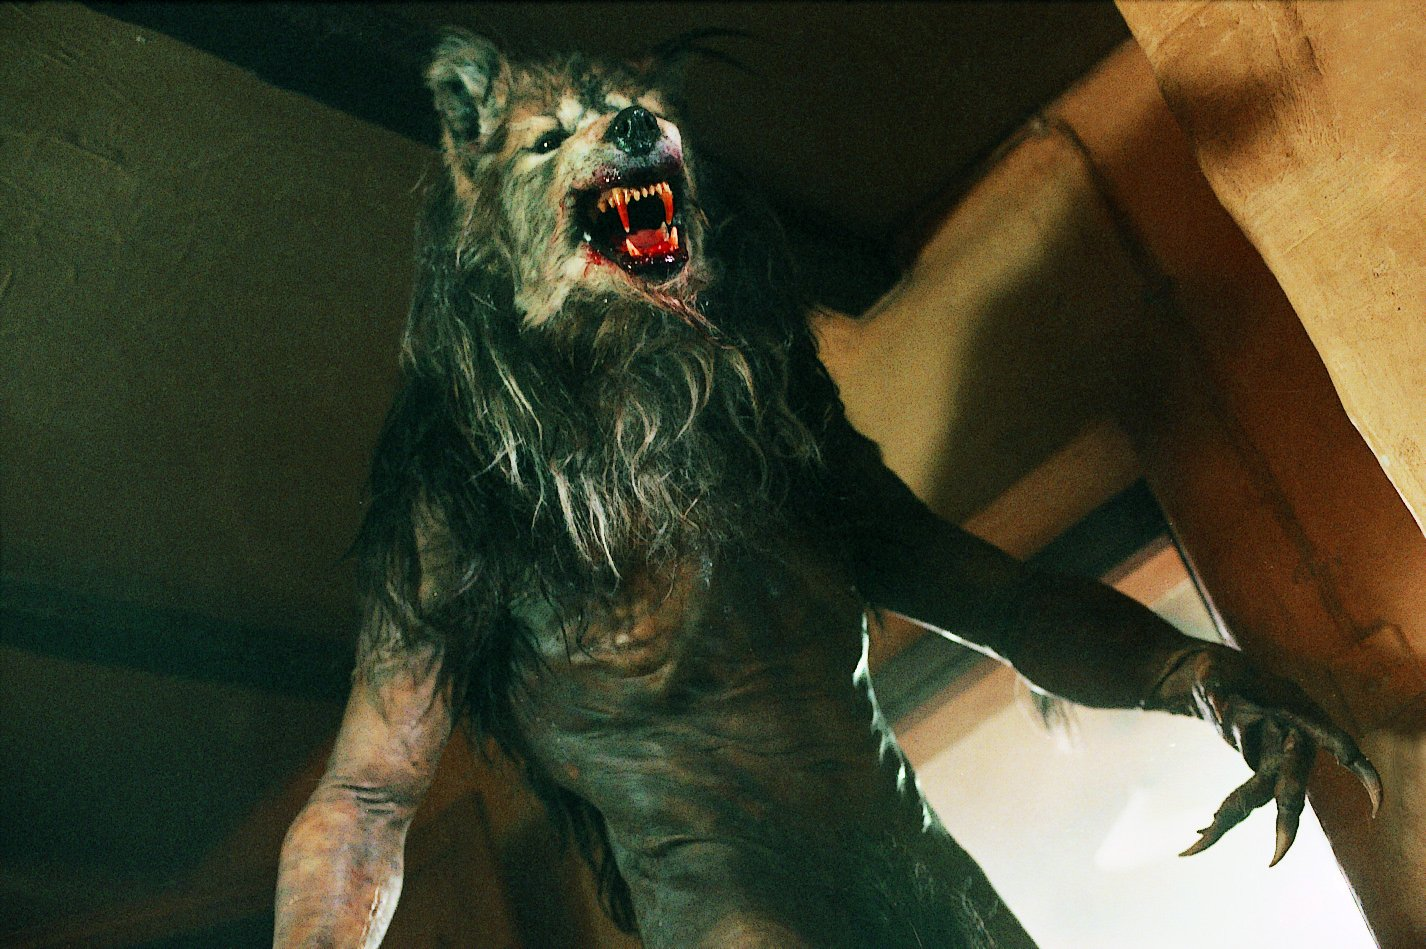 Werewolf | Monster Wiki | FANDOM powered by Wikia